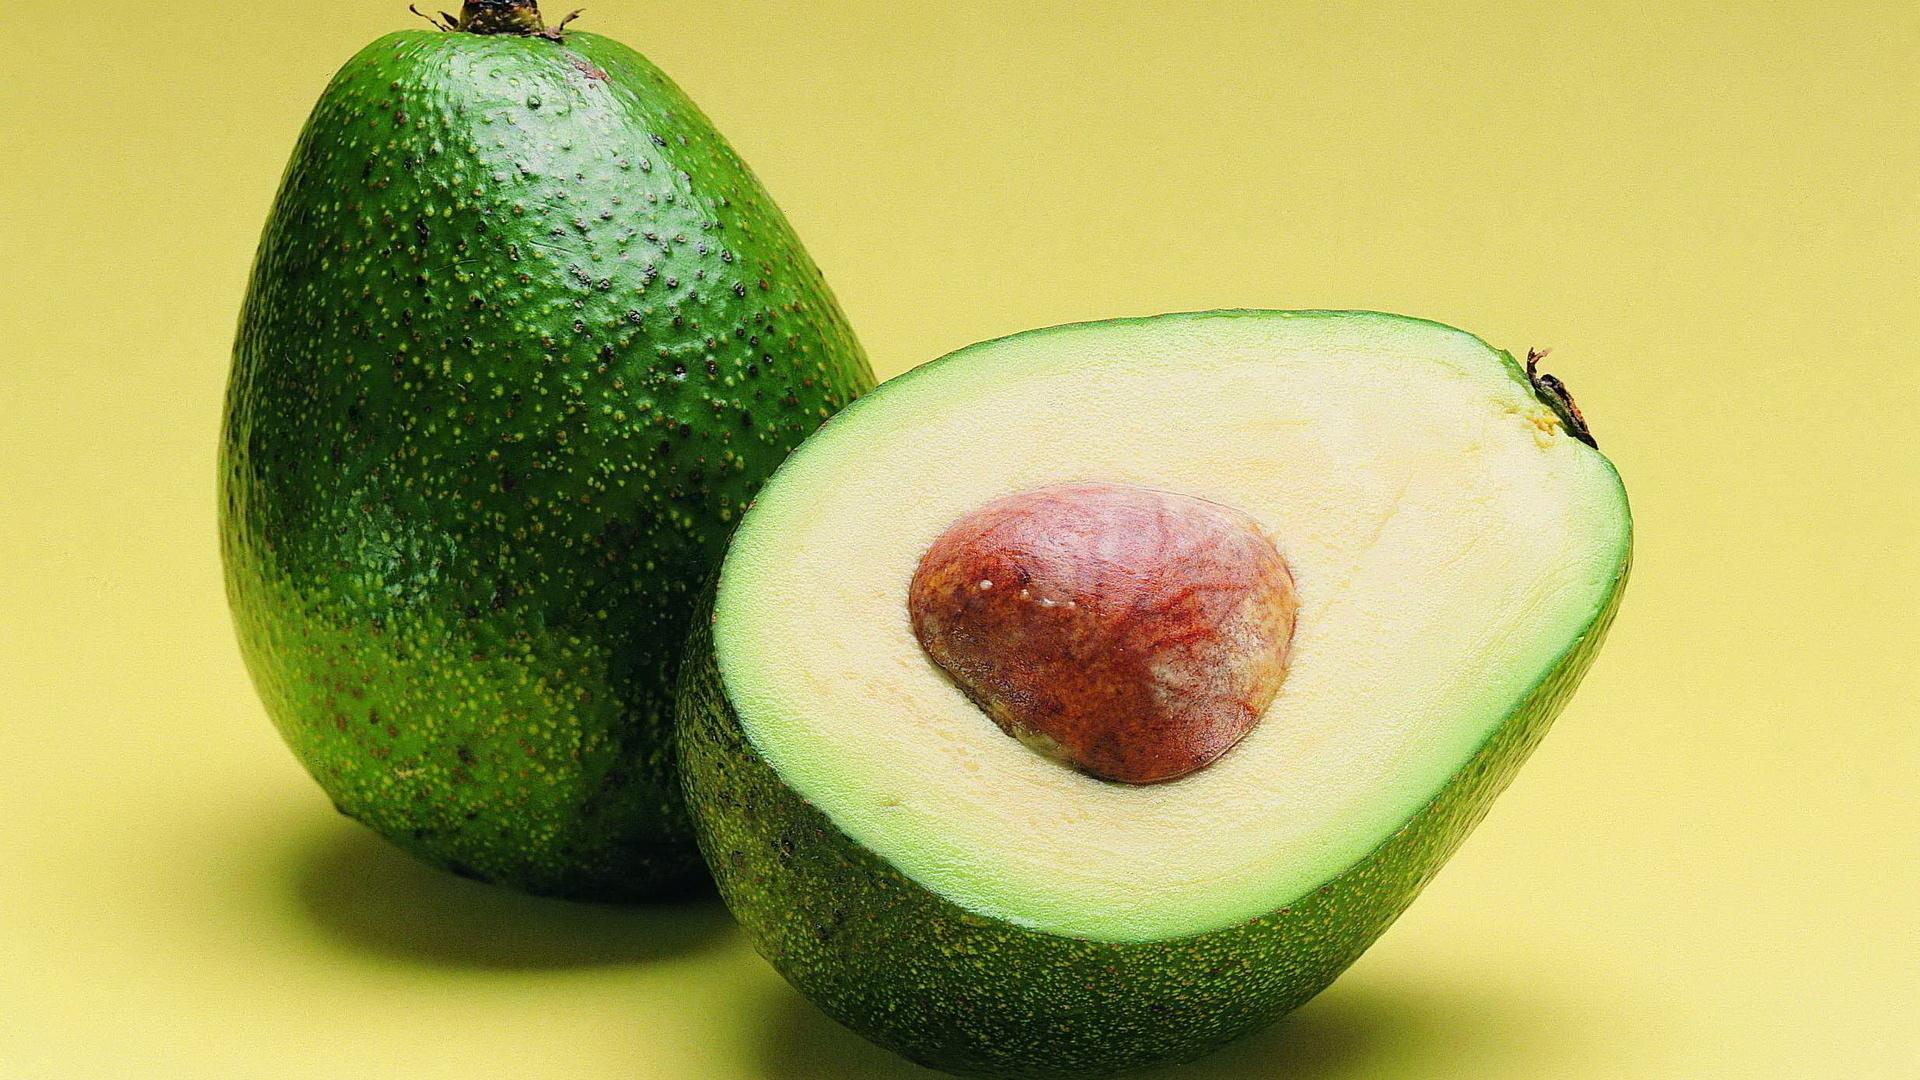 Avocado wallpapers HD quality